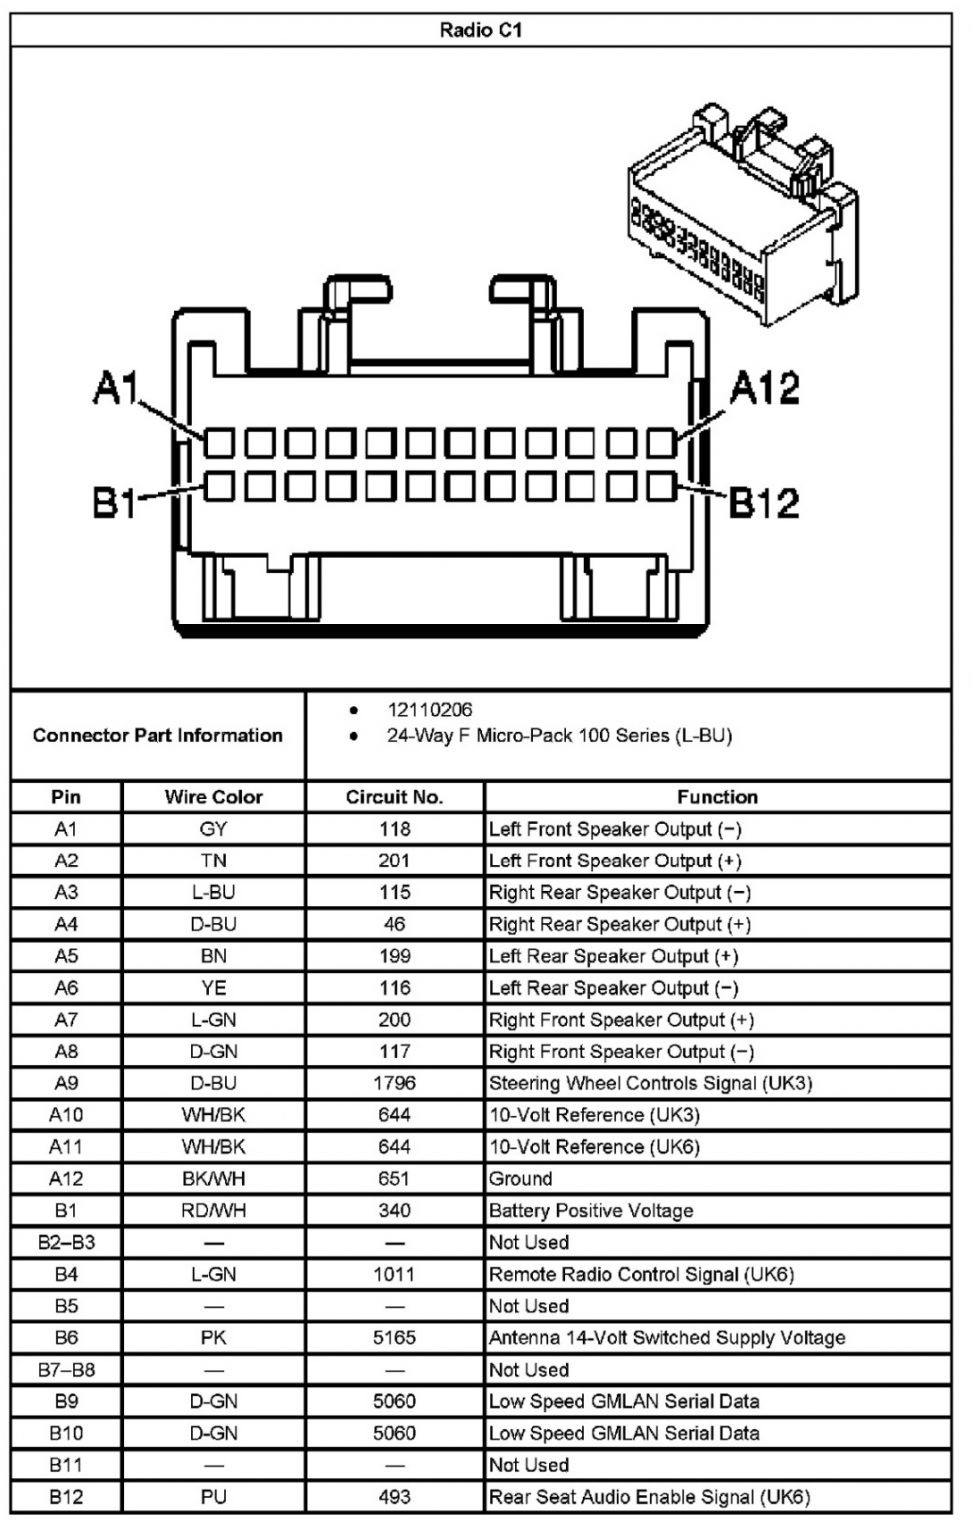 2004 Chevy Malibu Radio Wiring Diagram | Free Wiring Diagram